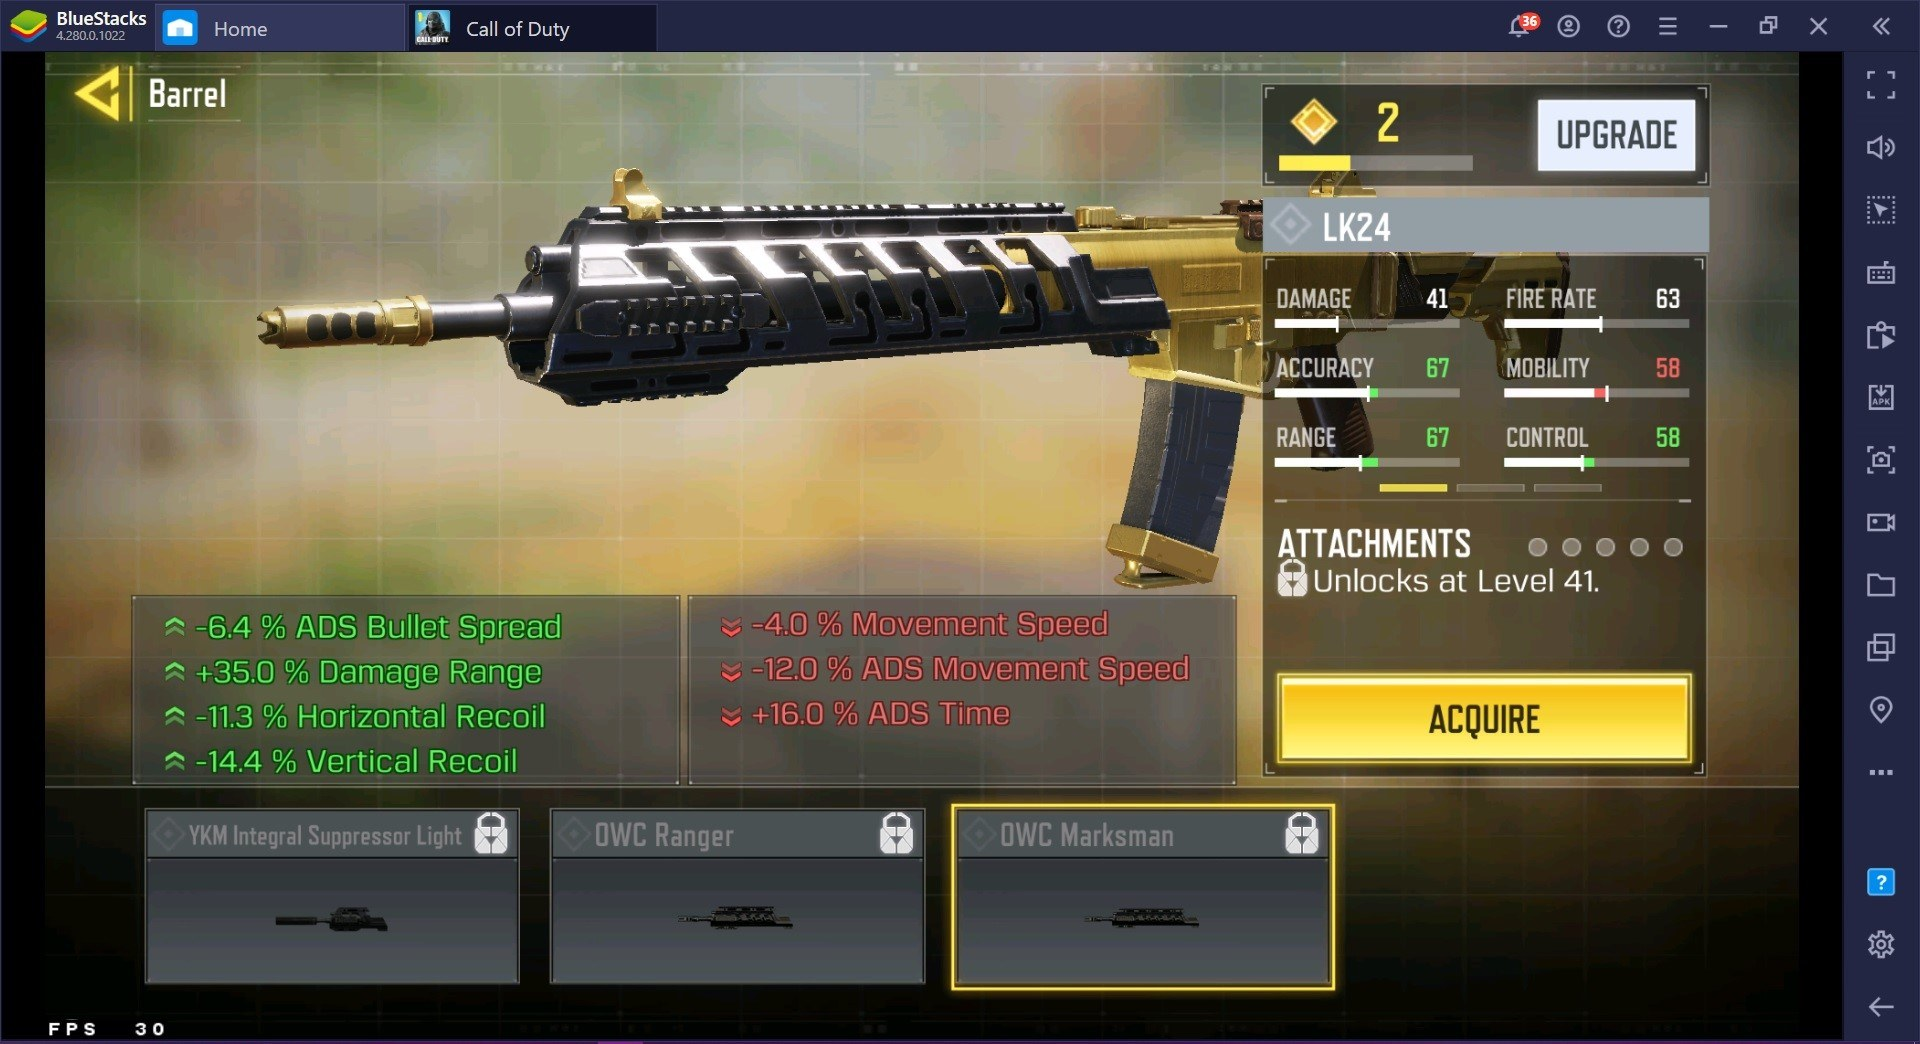 Call of Duty: Mobile Weapon Guide – It's Time to Reconsider the LK24